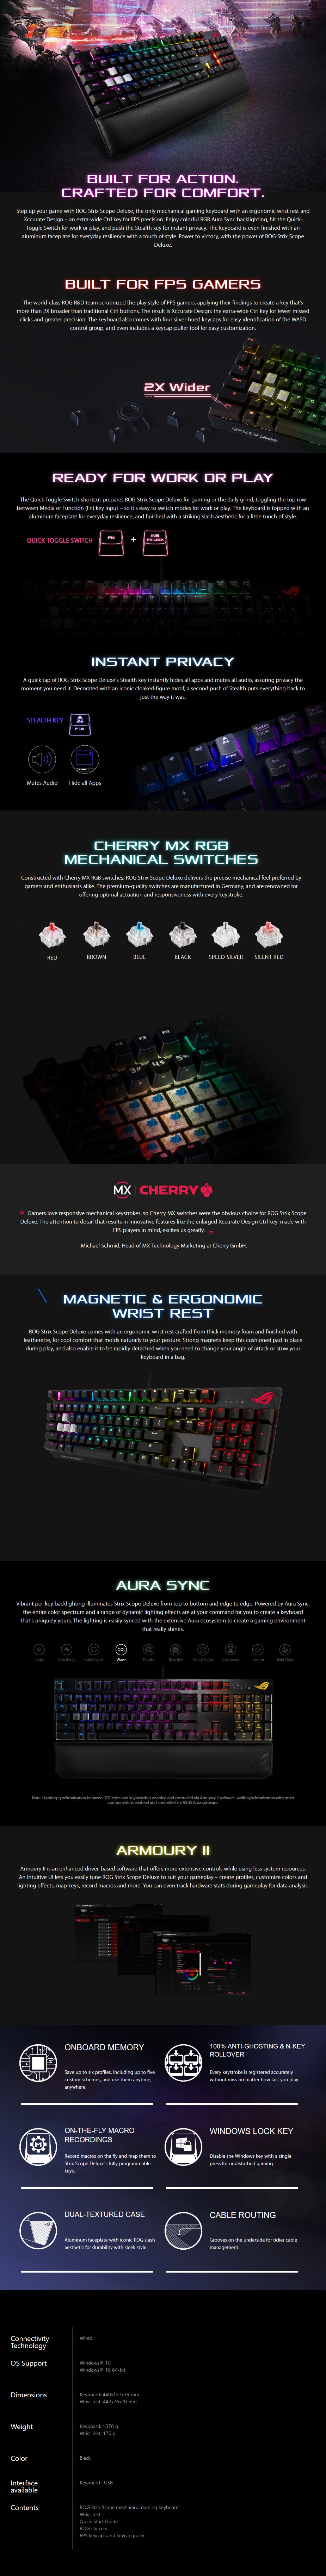 ASUS ROG Strix Scope RGB Mechanical Gaming Keyboard - Cherry MX Brown - Overview 1